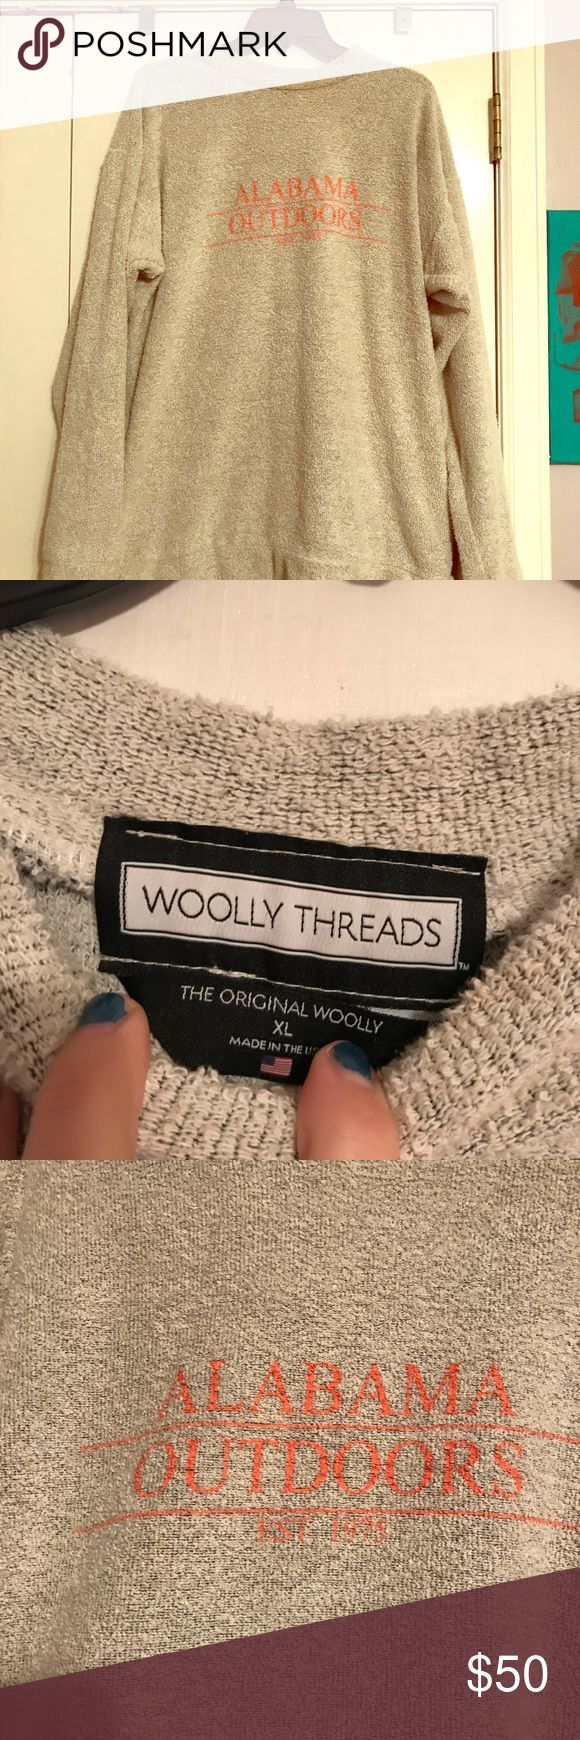 Authentic Woolly Threads pullover AL outdoors Just one look, and everyone will know where your heads at. You're on your way to class, the office, or just to grab a bite, but you'd rather be out on the trail, exploring! They're as soft as a new towel, but you can wear these in public. Woollies are made from a reverse-loop process that produces a durable sweater that feels like a wool, but isn't! It was discovered by the creators on a trip abroad, and you'll love to take your Alabama Outdoors…